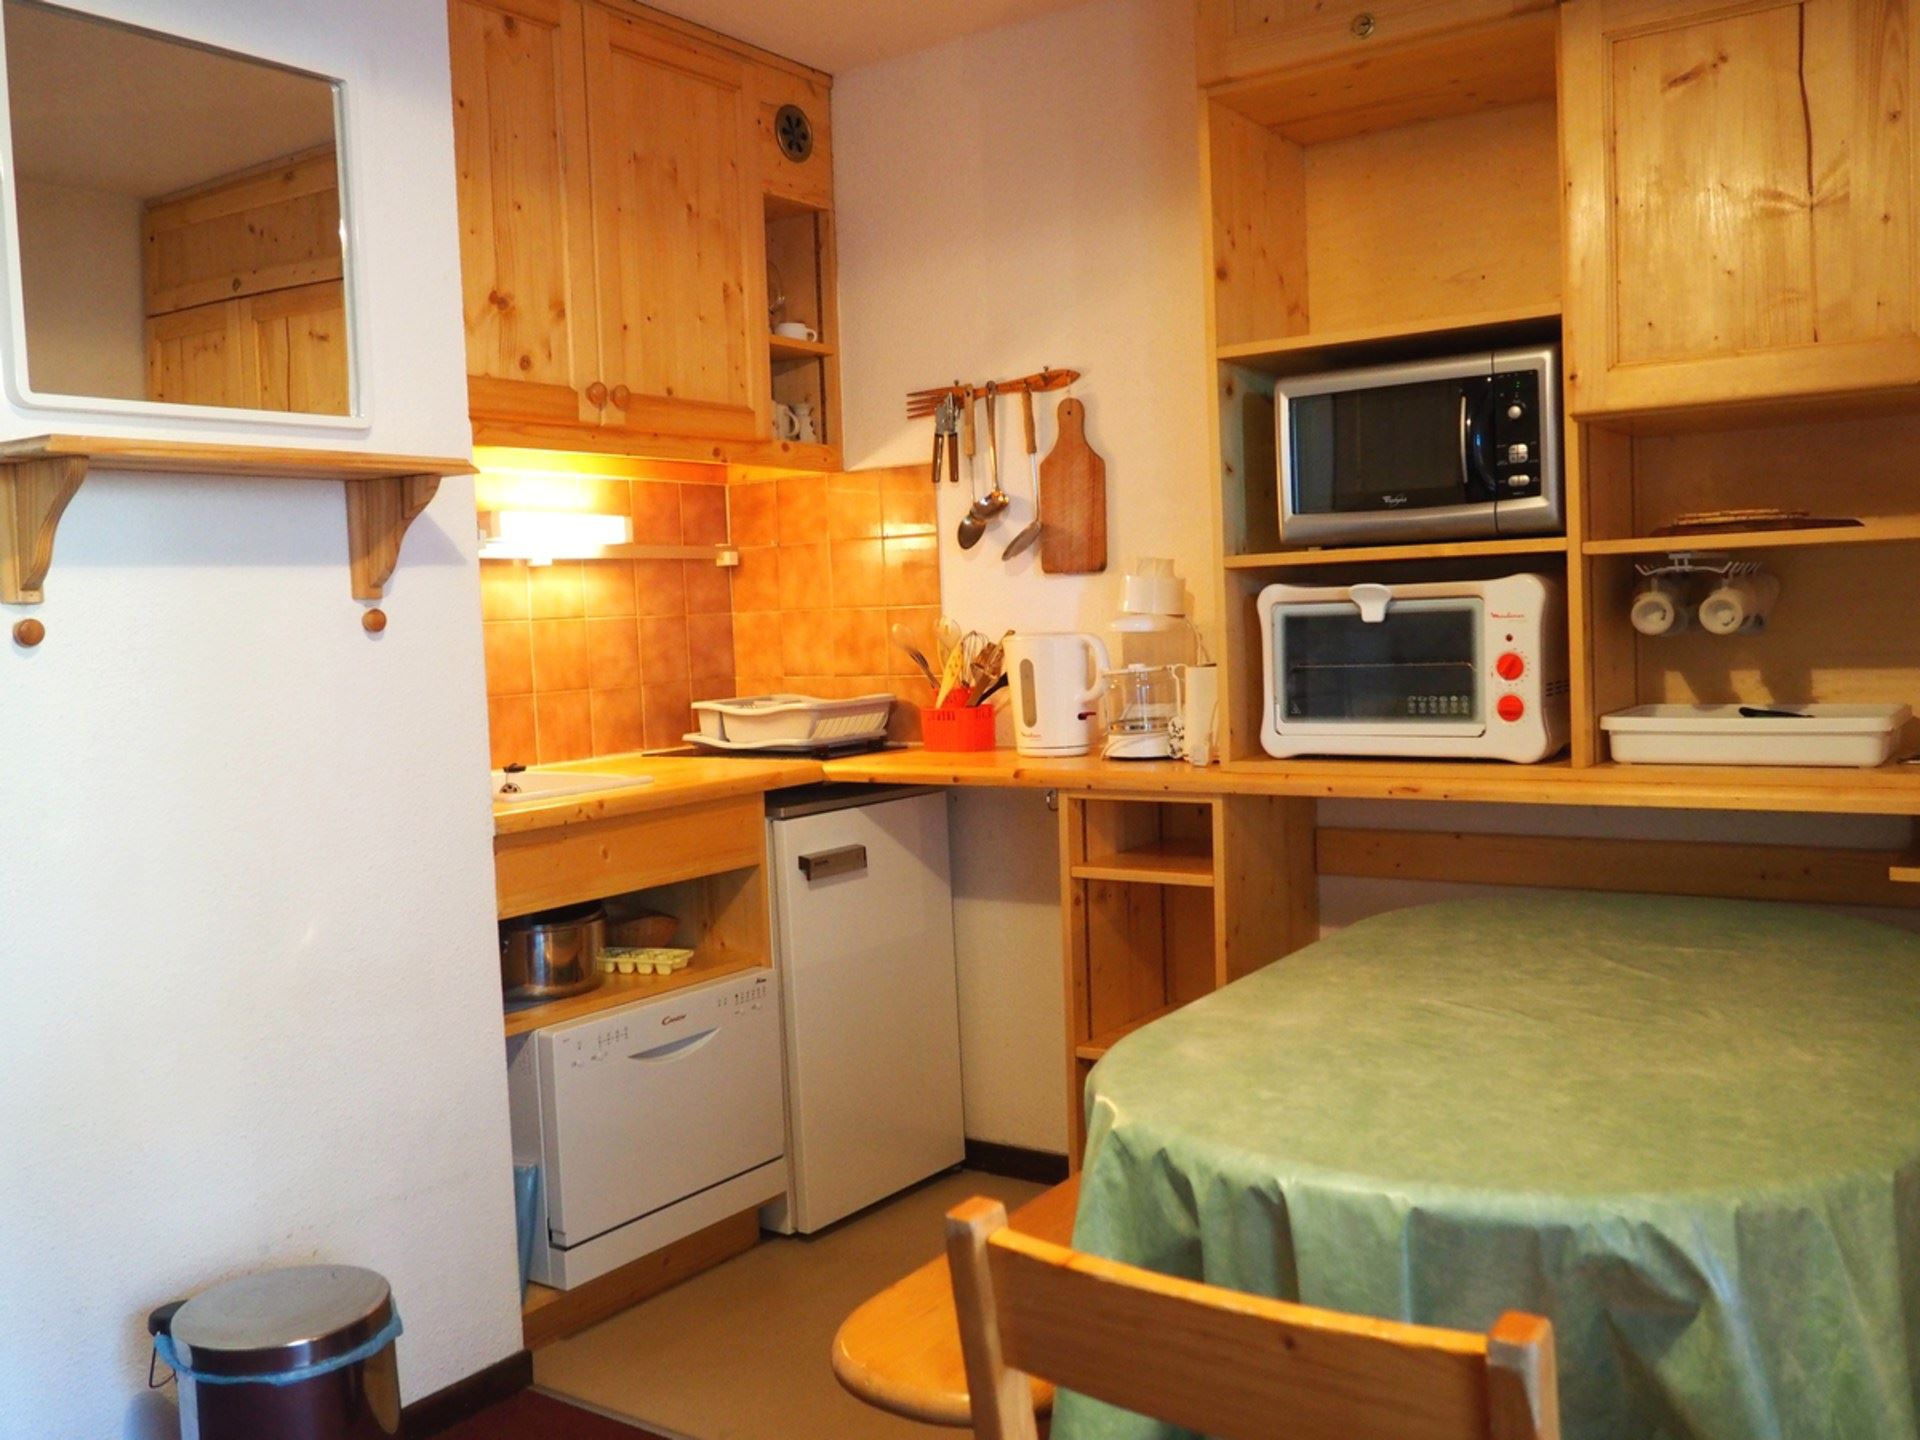 4 Pers Studio + cabin ski-in ski-out / SKI SOLEIL 1204